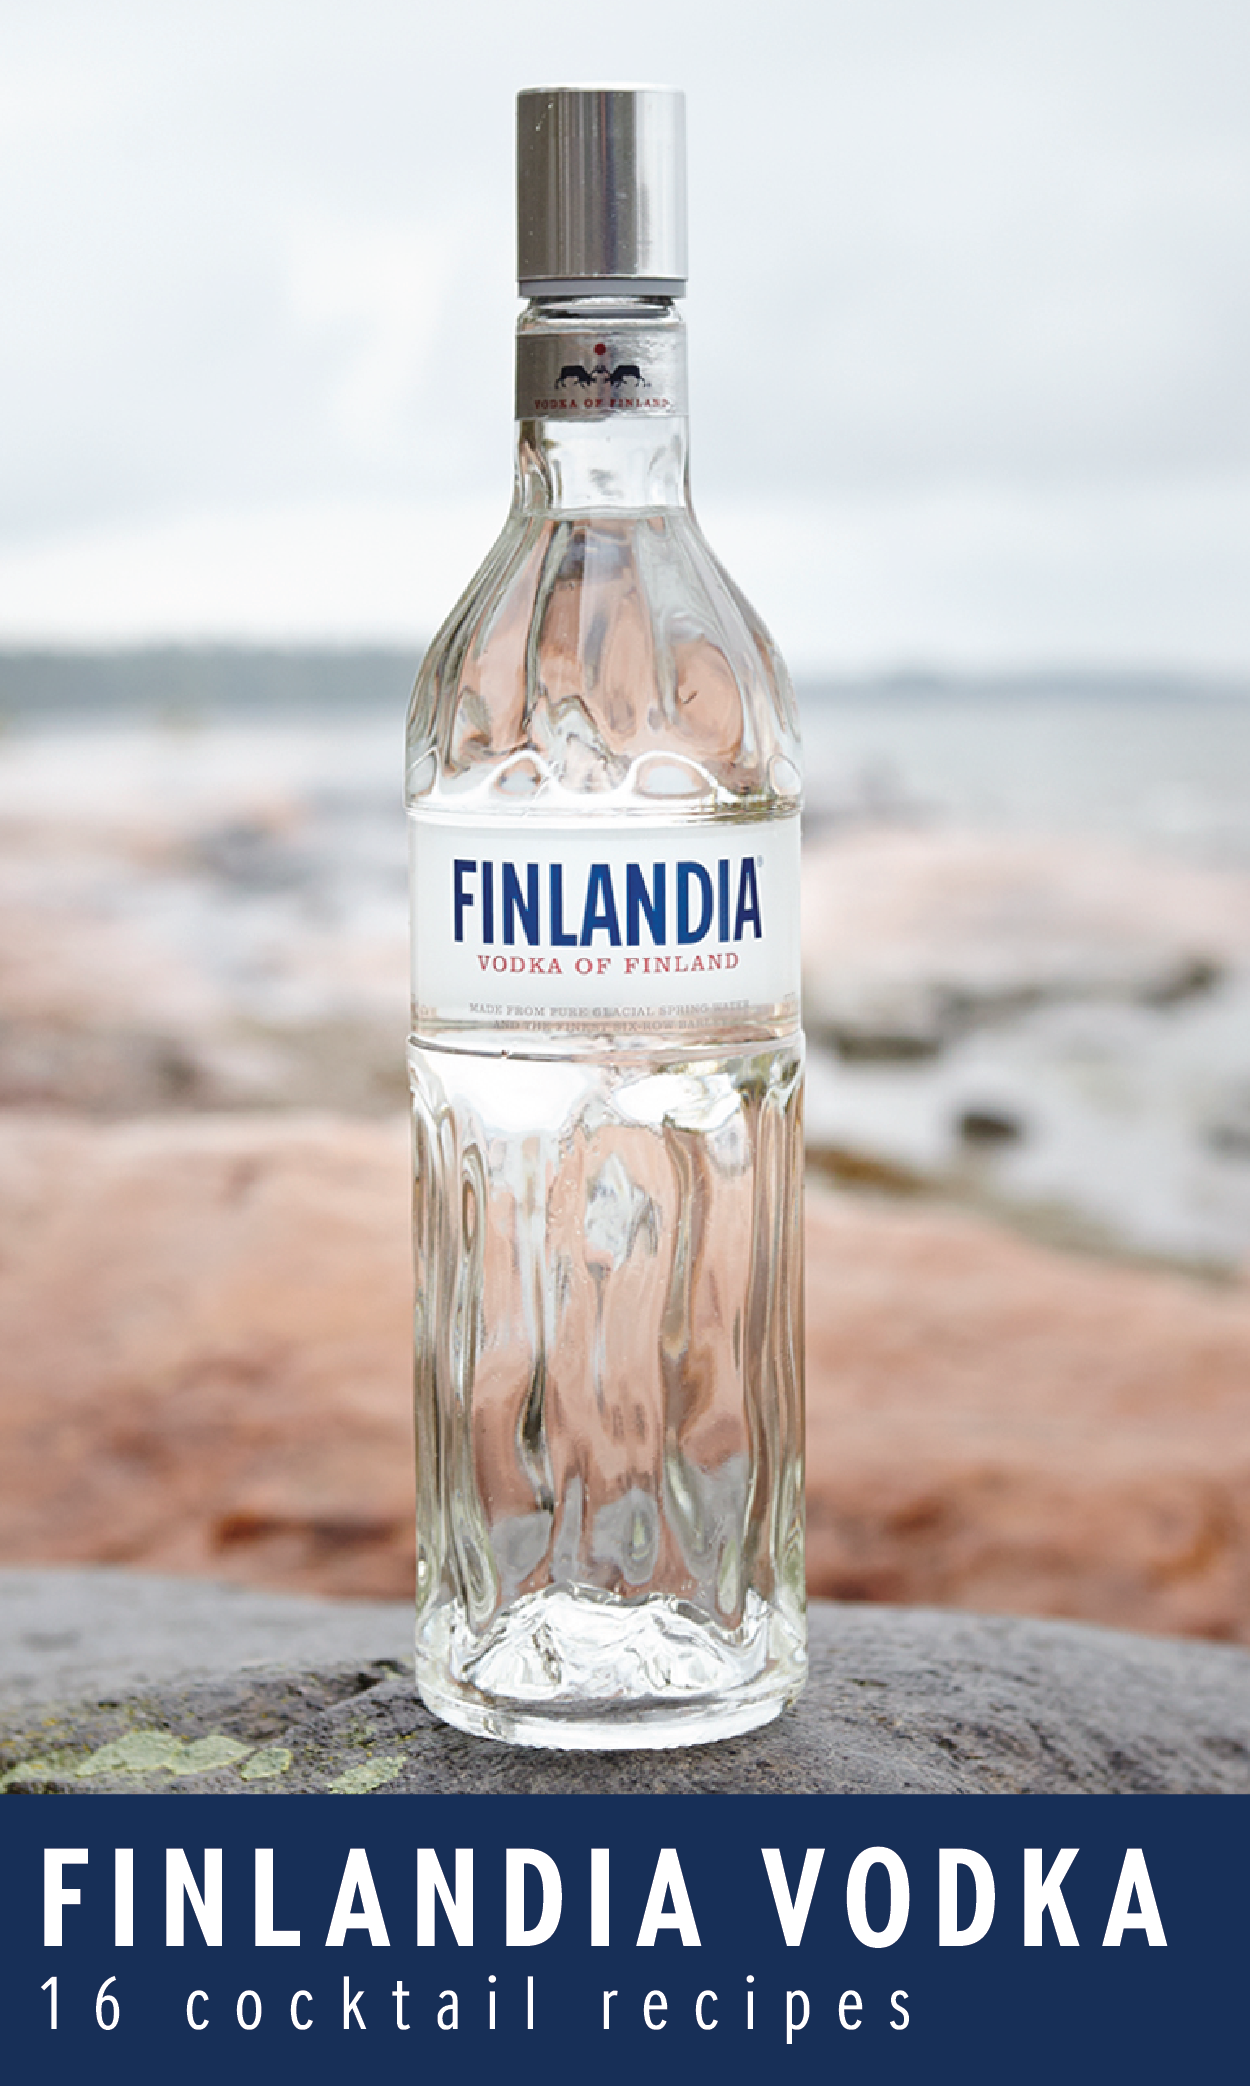 Whether it's a birthday, bridal shower or casual get-together with friends, enjoy a delicious and flavorful cocktail made with Finlandia Vodka. With 16 cocktail options to choose from, you are sure to find the perfect recipe for any event. Click here to see ingredients and step-by-step instructions!